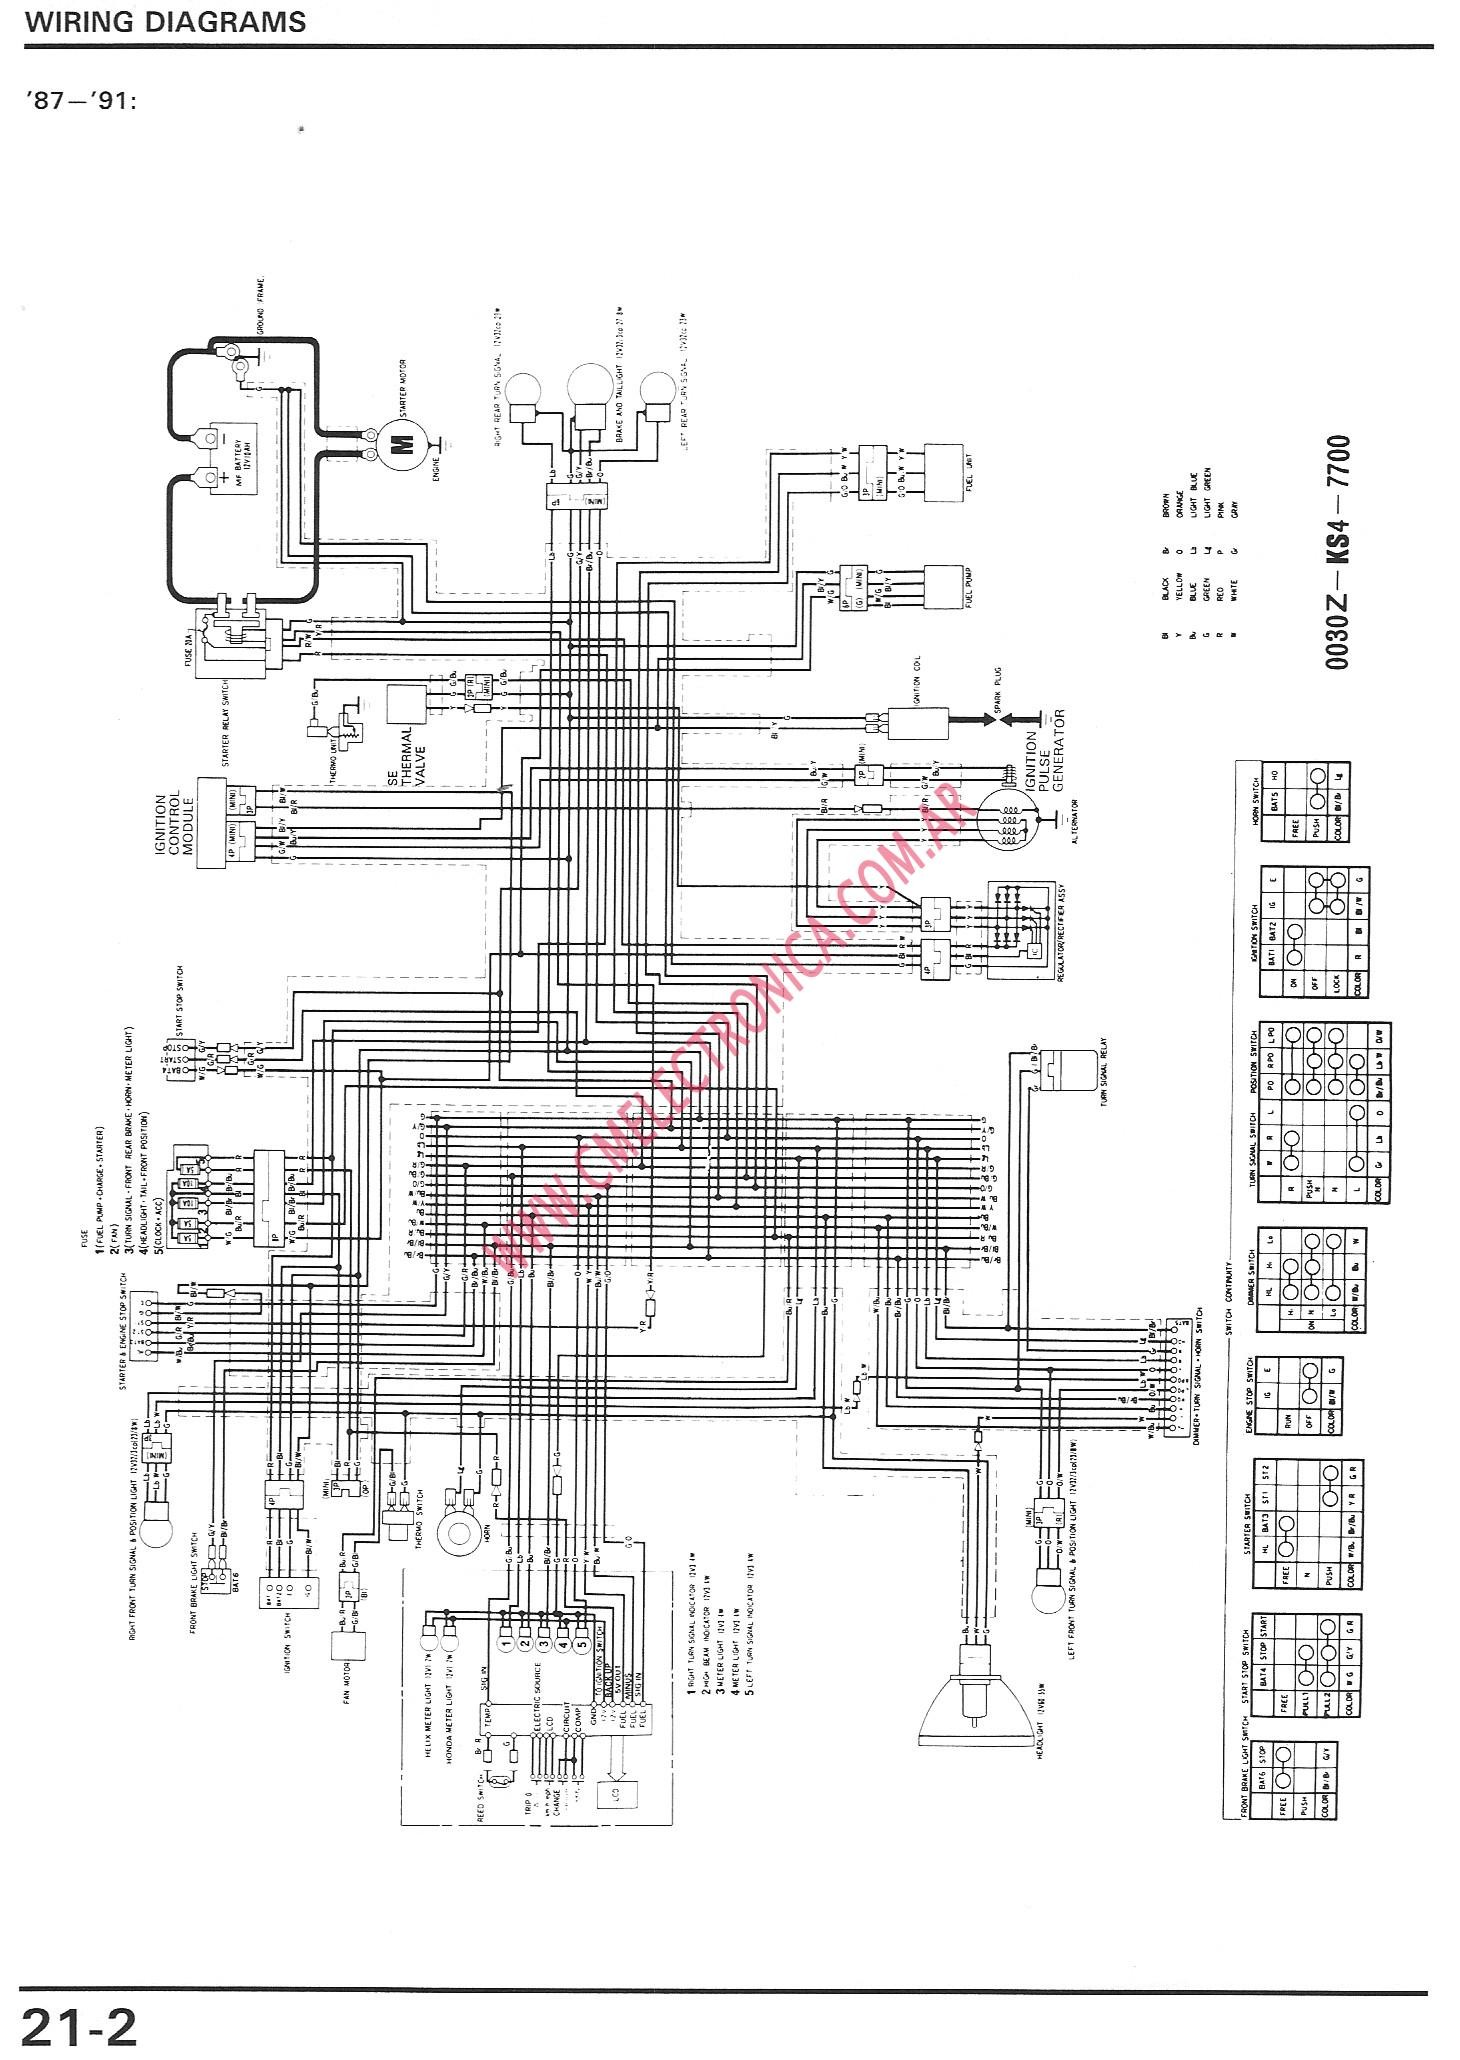 hight resolution of daihatsu hijet engine diagram daihatsu hijet wiring diagram daihatsu wiring diagrams instructions of daihatsu hijet engine